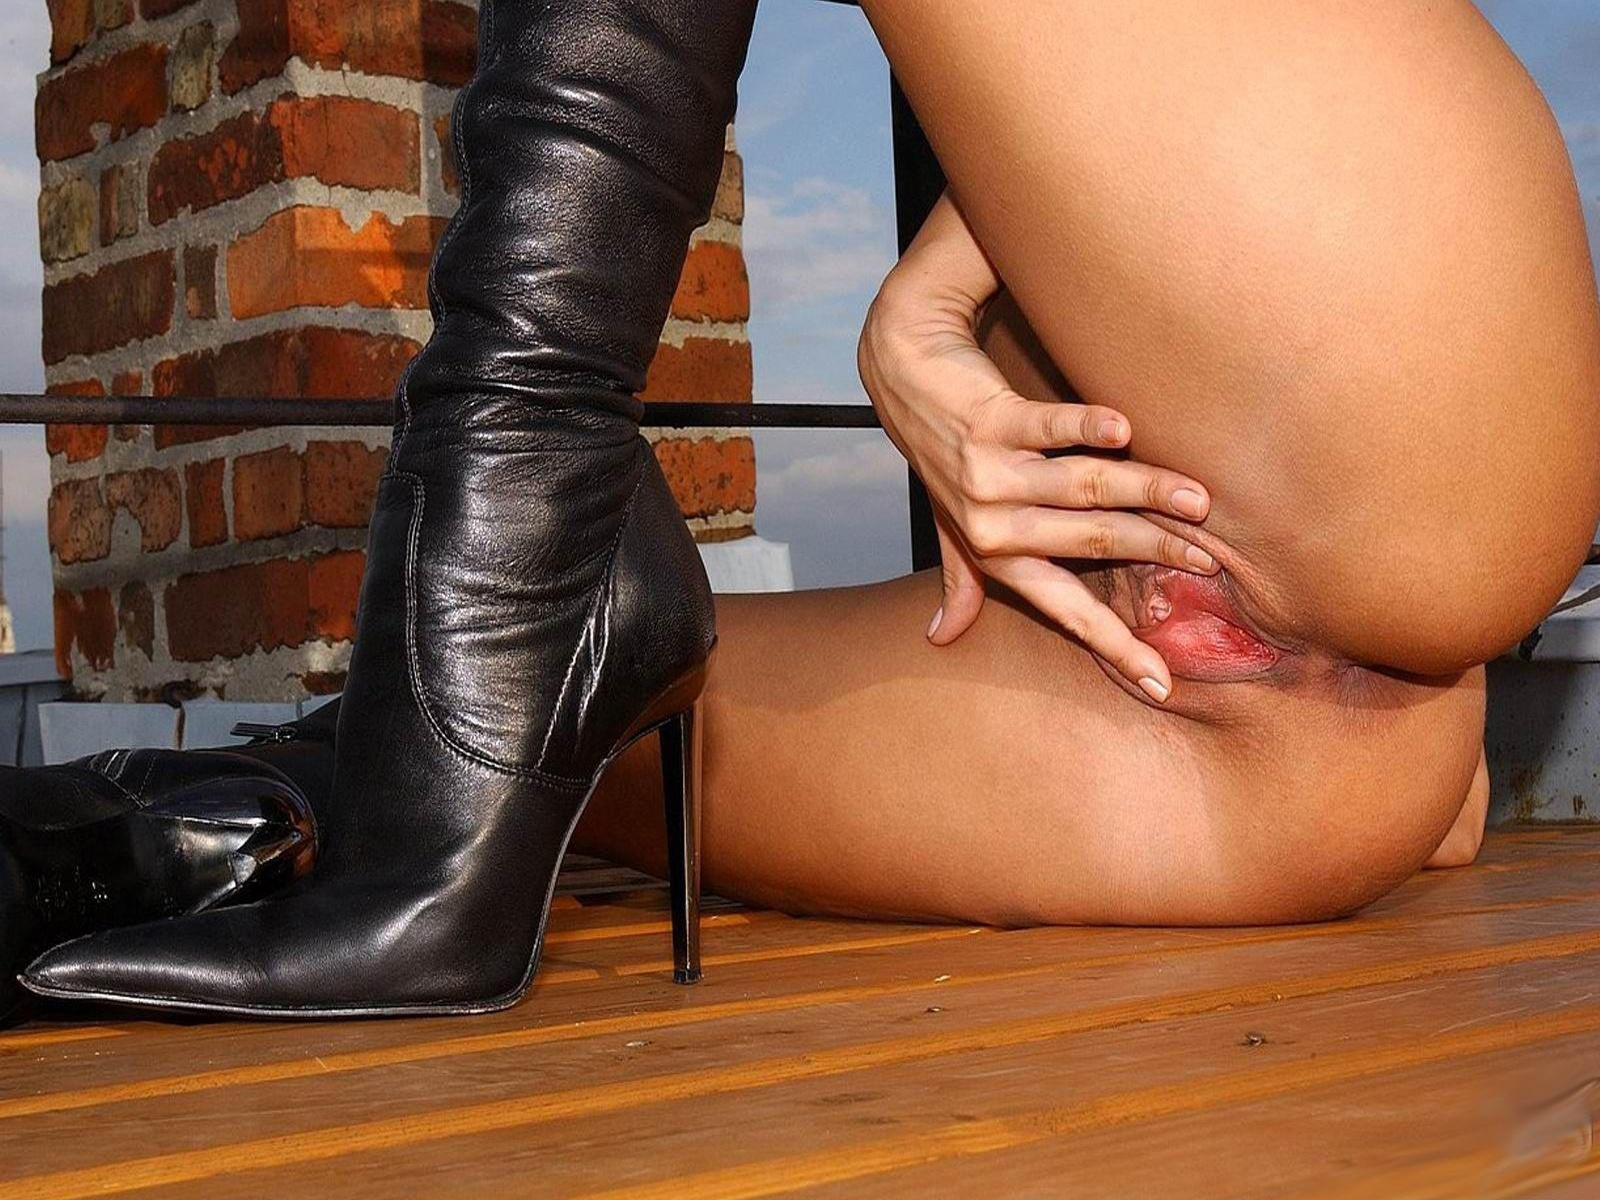 Boots sex wallpaper adult movies